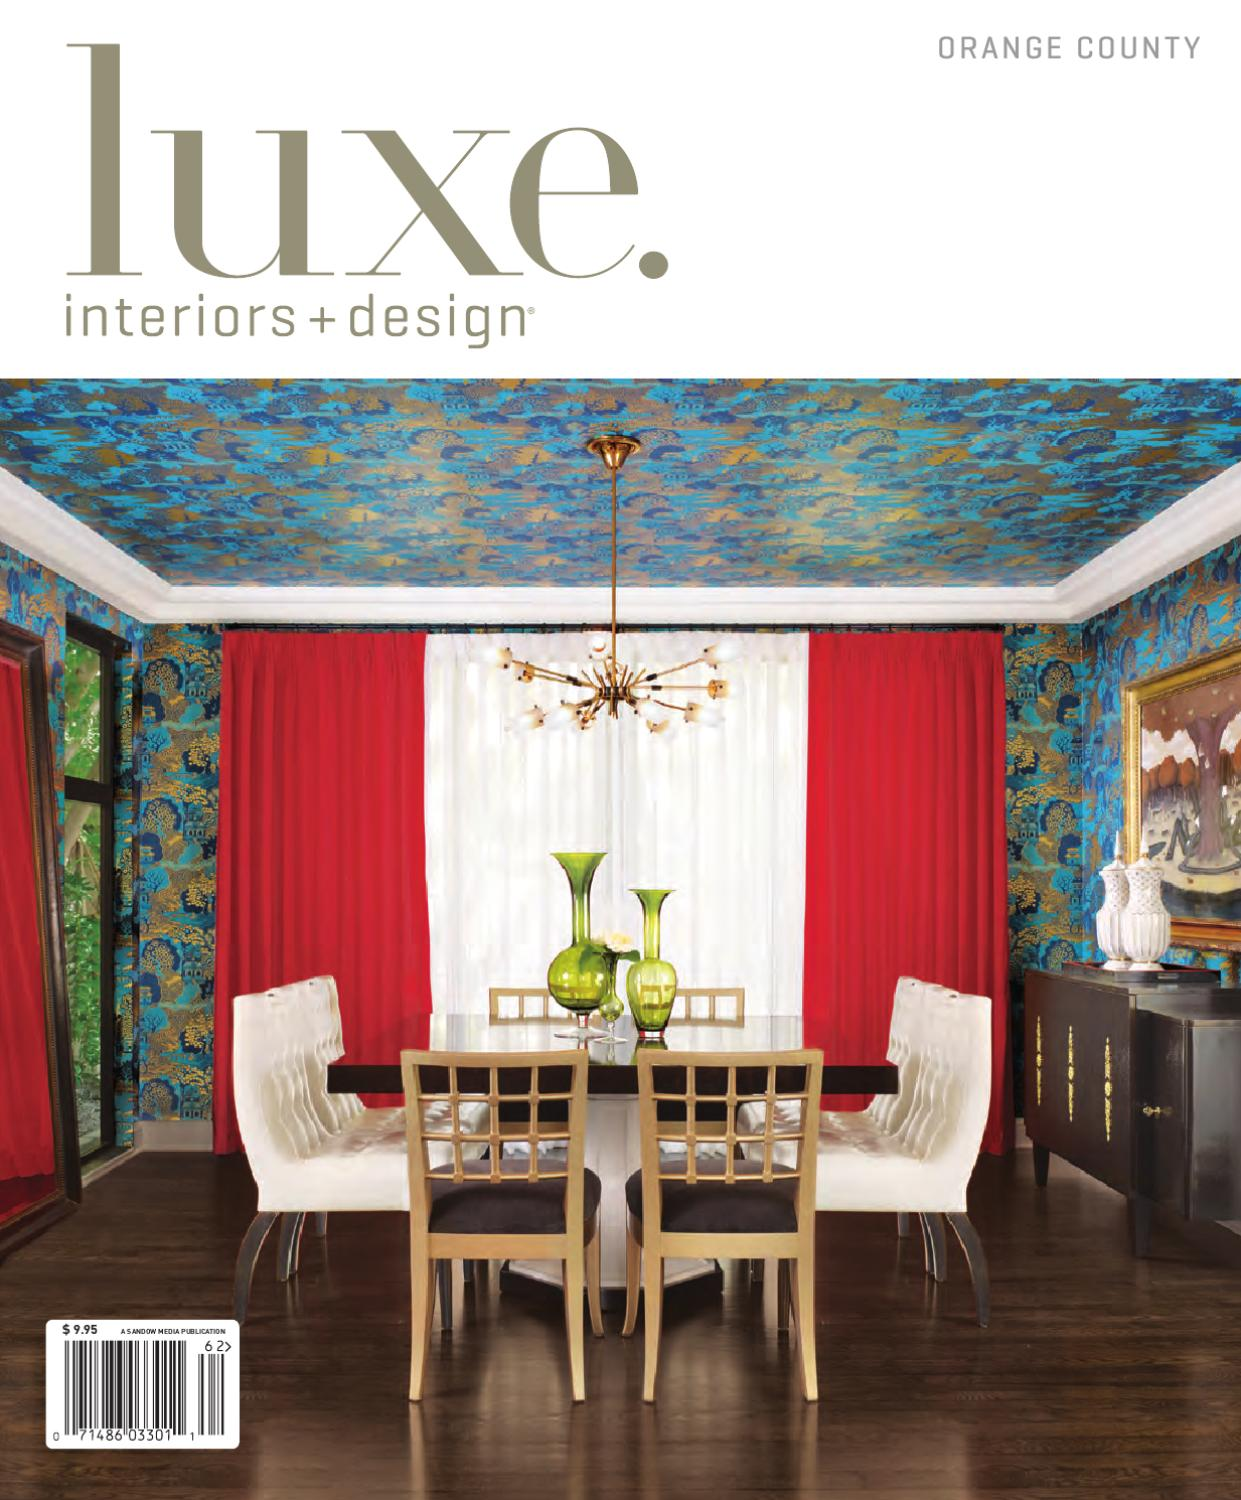 LUXE Interior Design Orange County By Sandow Media